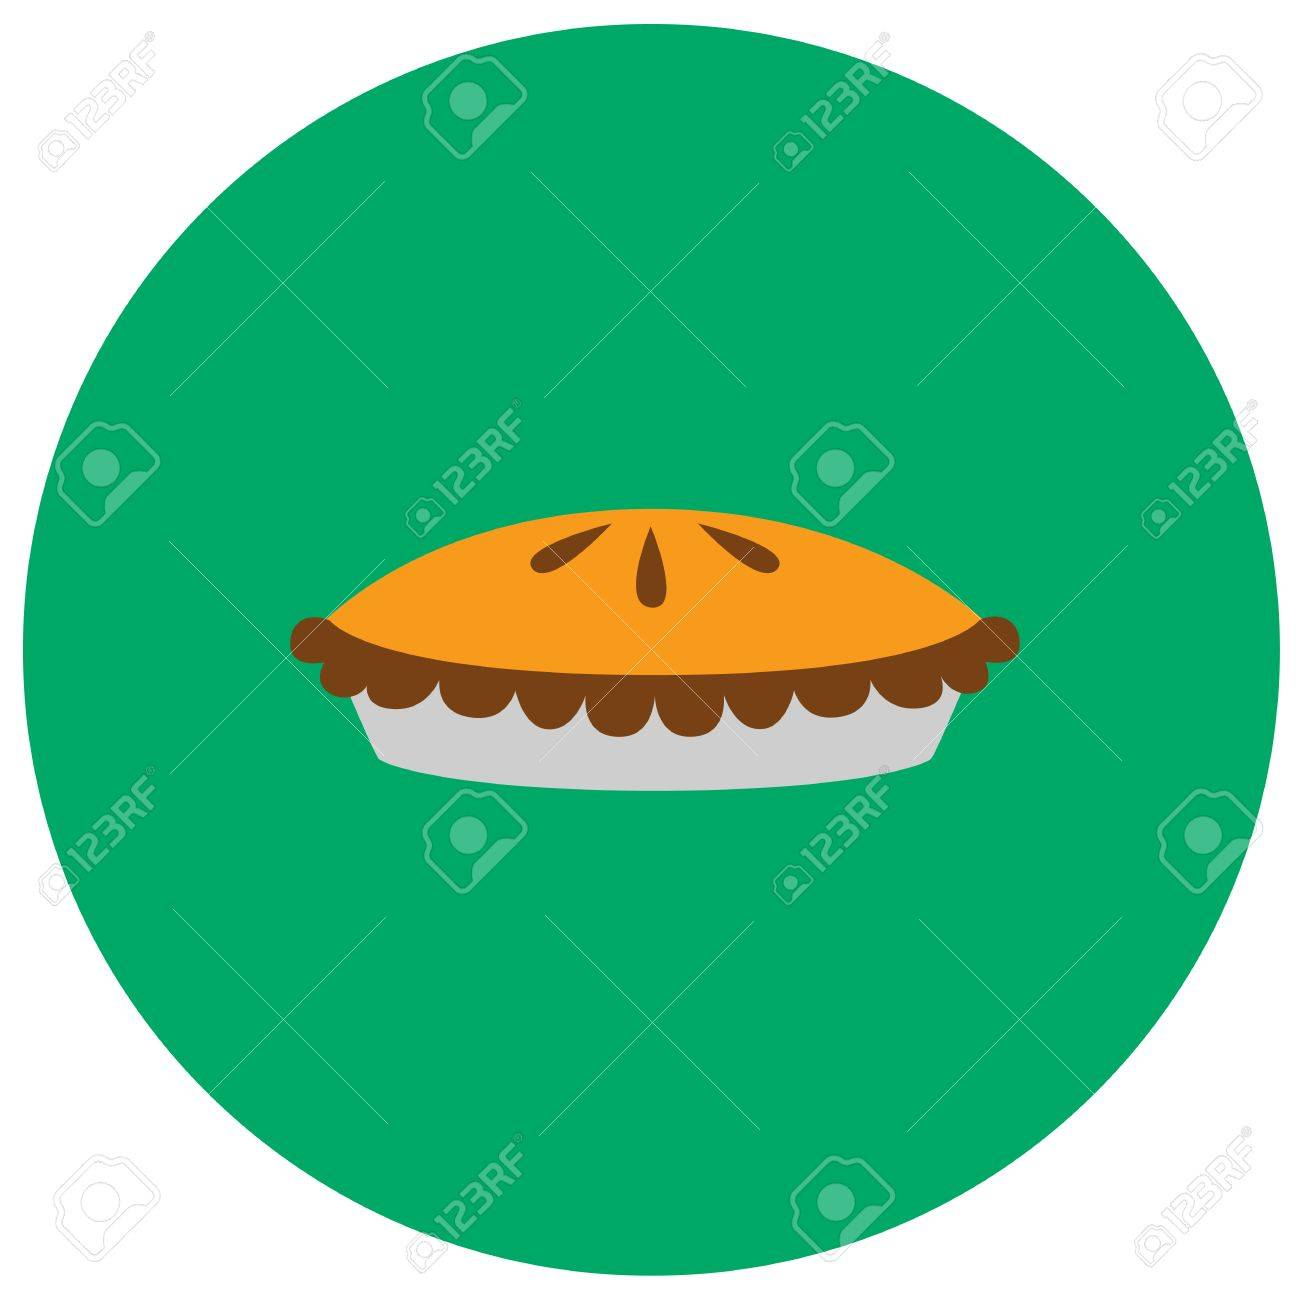 Pumpkin Pie Cute Icon In Trendy Flat Style Isolated On Color Background Thanksgiving Symbol For